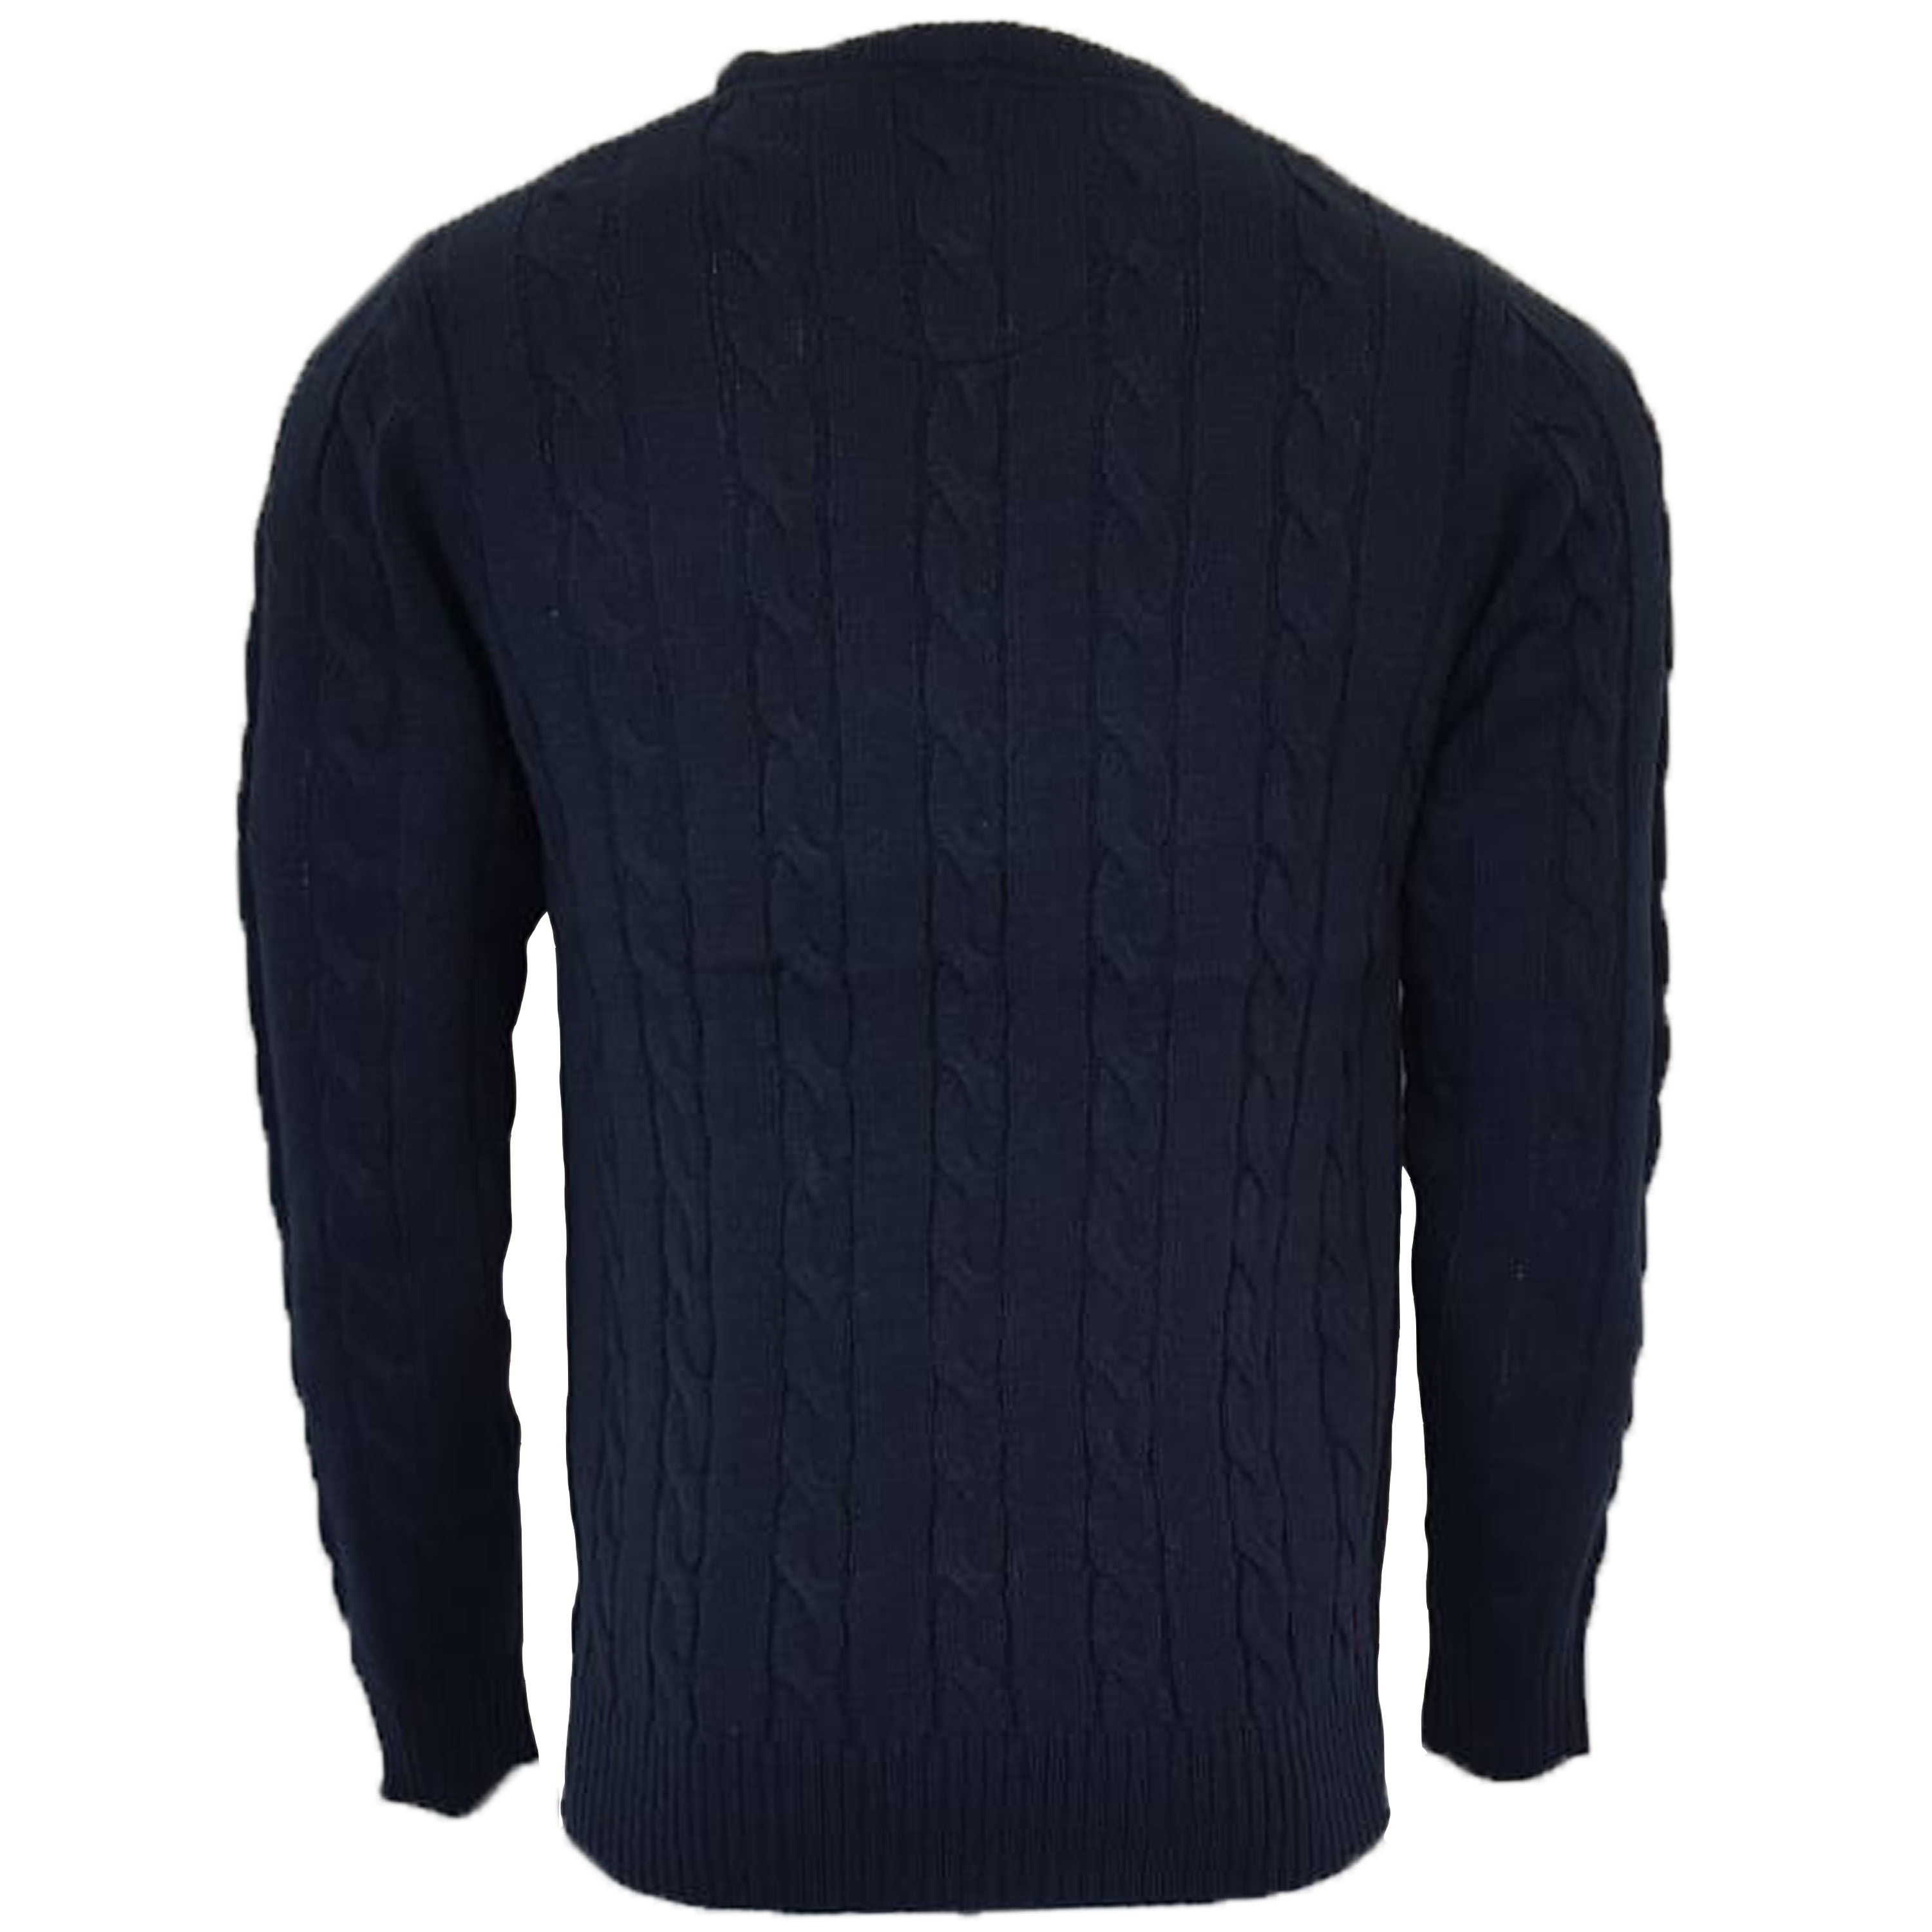 Mens-Wool-Mix-Jumper-Brave-Soul-Chunky-Knitted-Pullover-Sweater-Top-MAOISM-New thumbnail 6